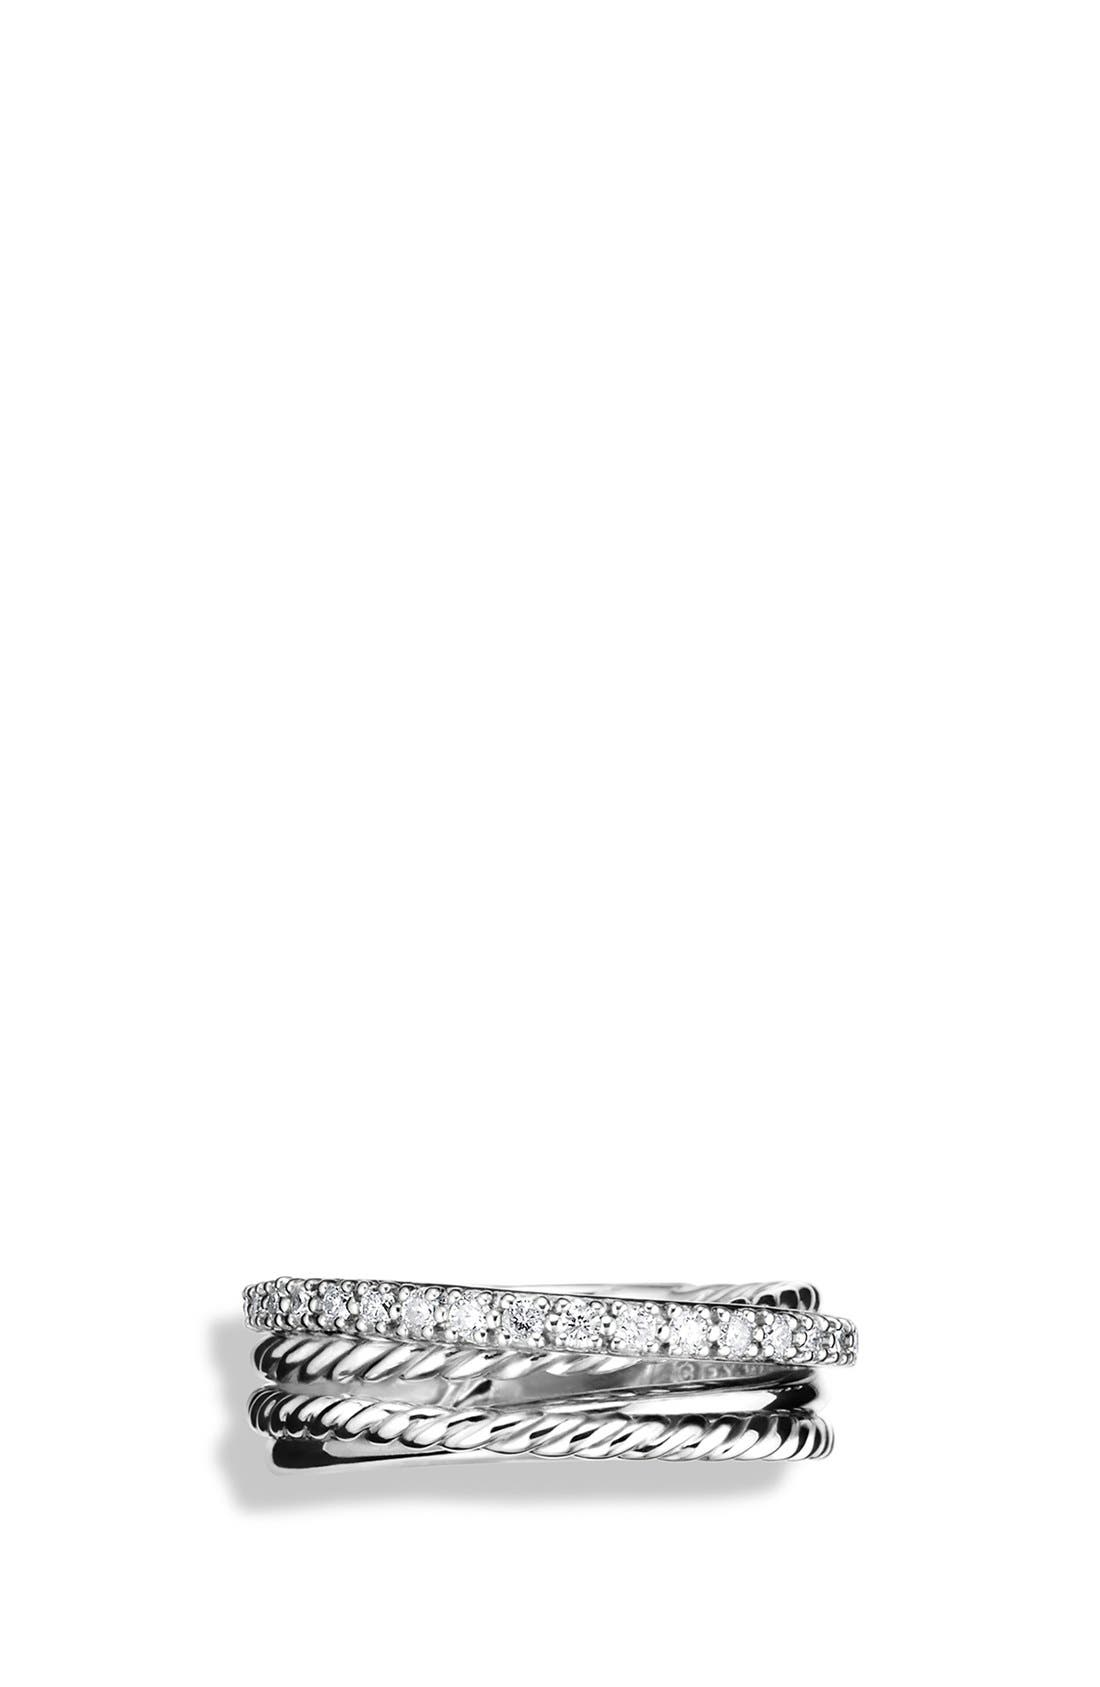 'Crossover' Ring with Diamonds,                             Alternate thumbnail 3, color,                             Silver/ Diamond